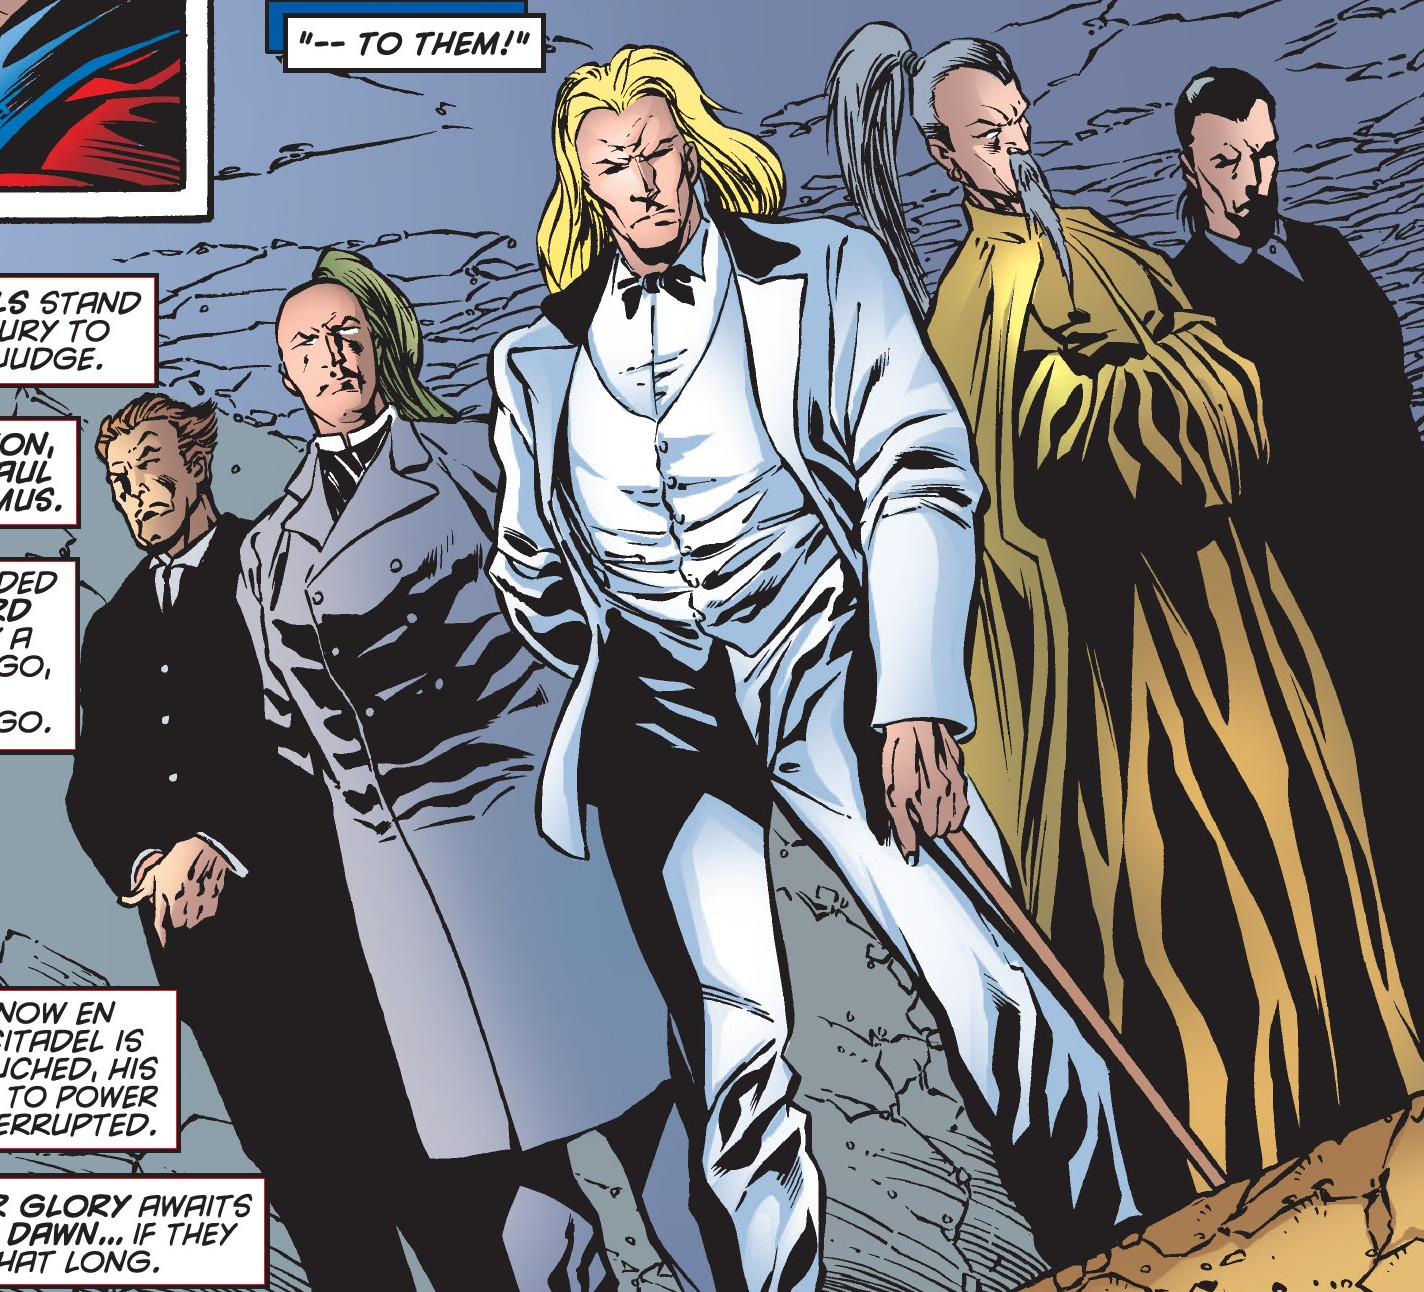 File:Externals (Earth-616) from Gambit Vol 3 14.jpg.jpg